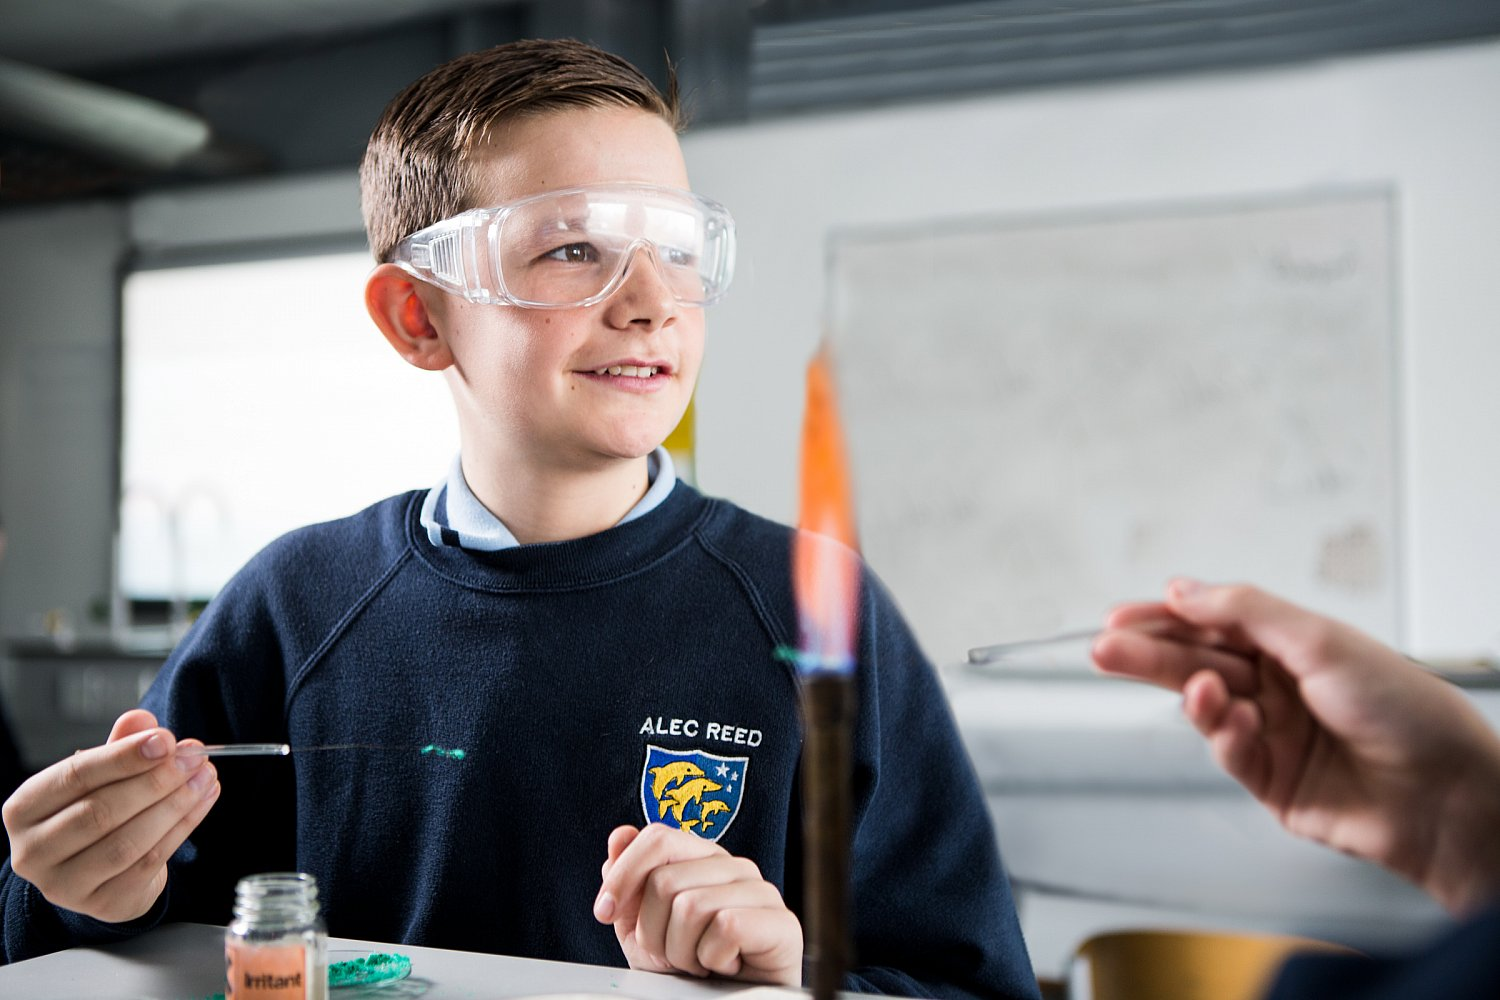 primary-schoolboy-bunsen-burner-stem-science-mat-smith-photography.jpg